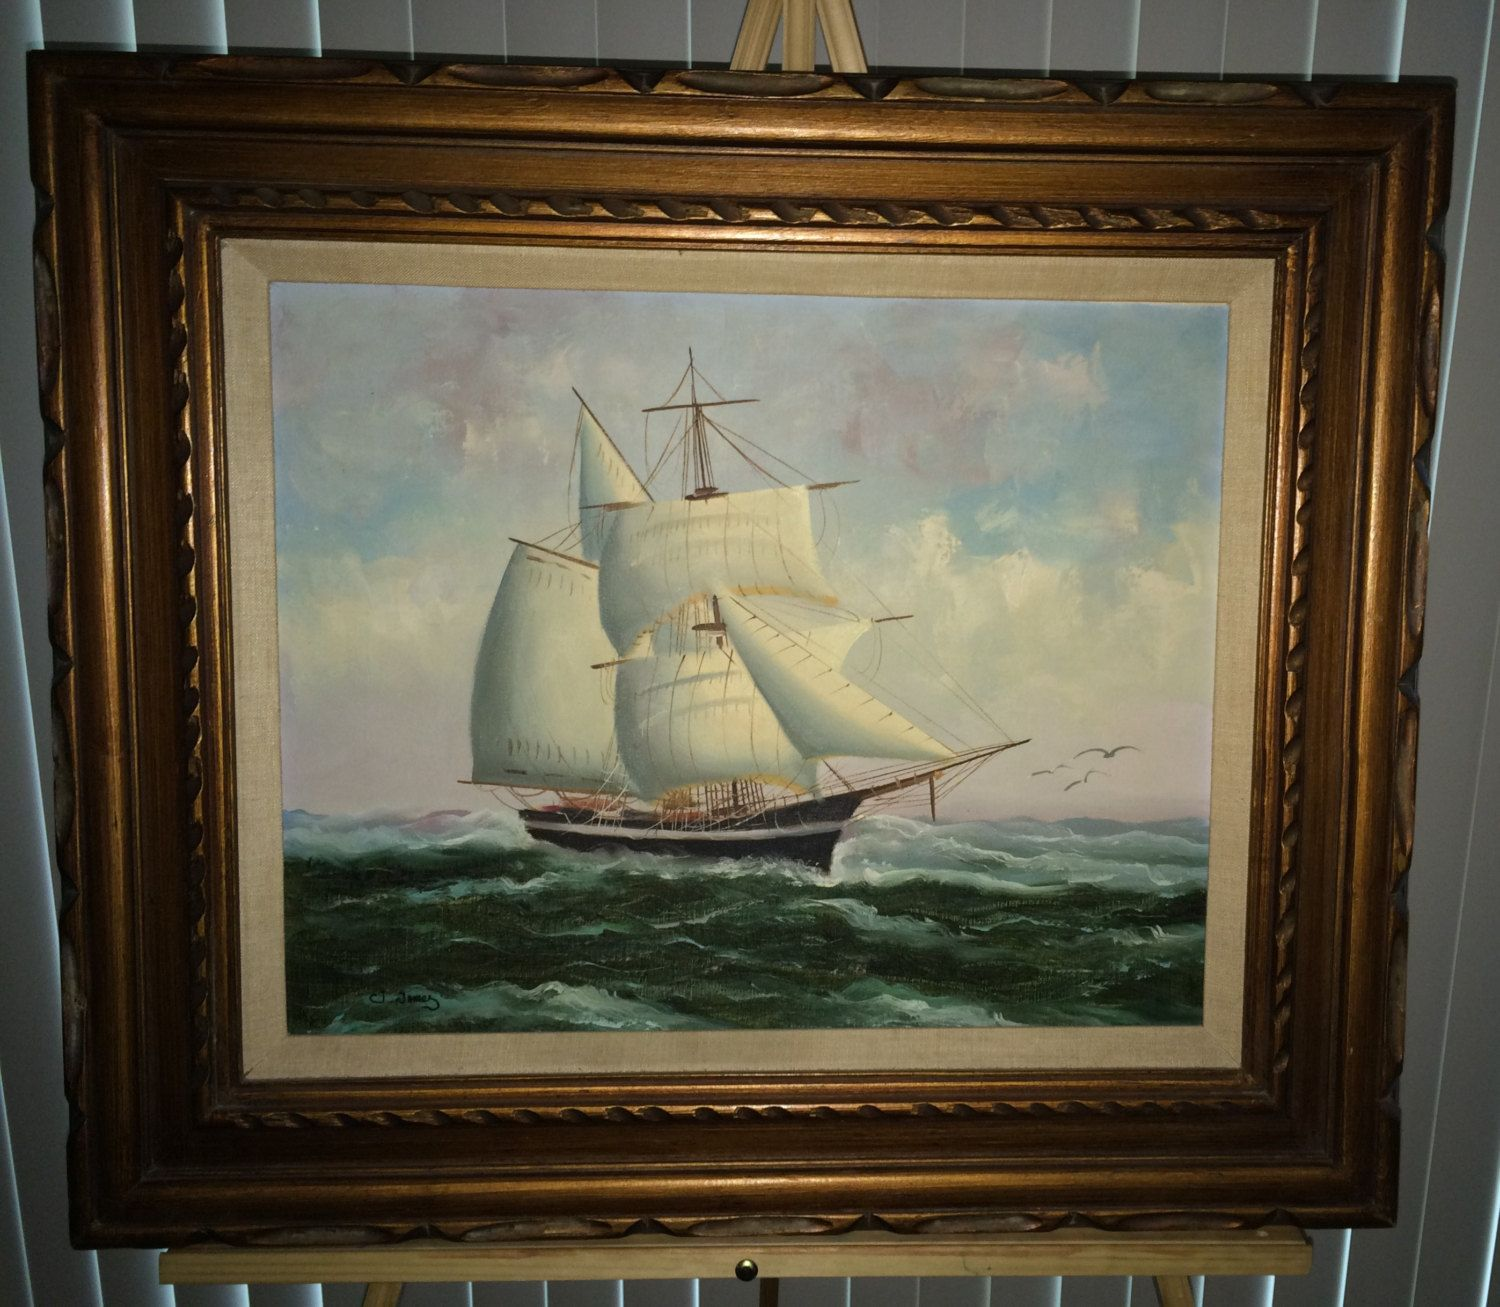 Clipper ship oil on canvas original painting signed by j james clipper ship oil on canvast original painting signed by j james nautical scene original frame jeuxipadfo Image collections